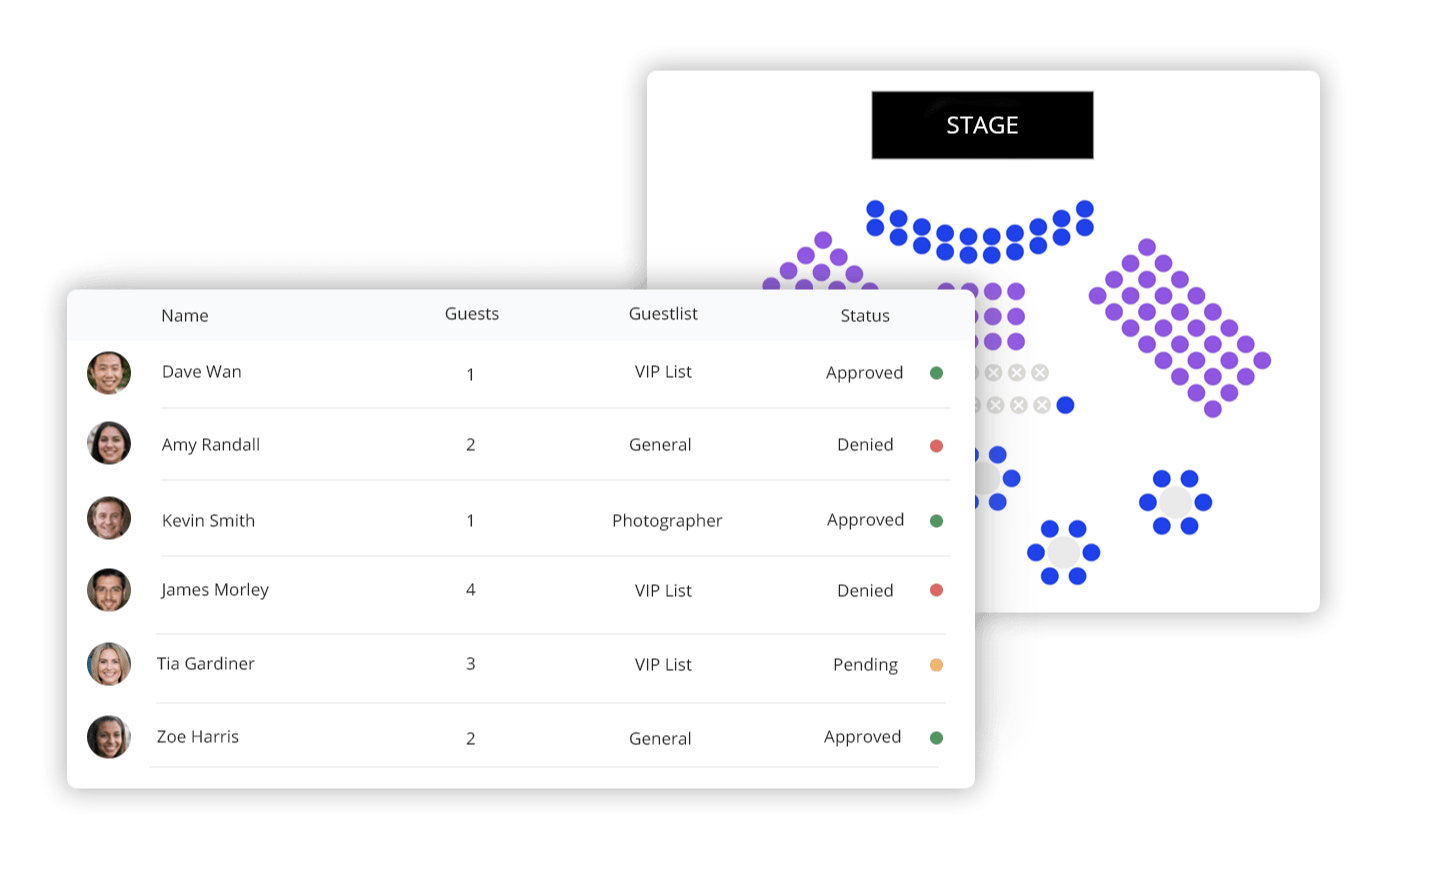 Automate your guest lists, organise them into categories, and cut down sign-up times